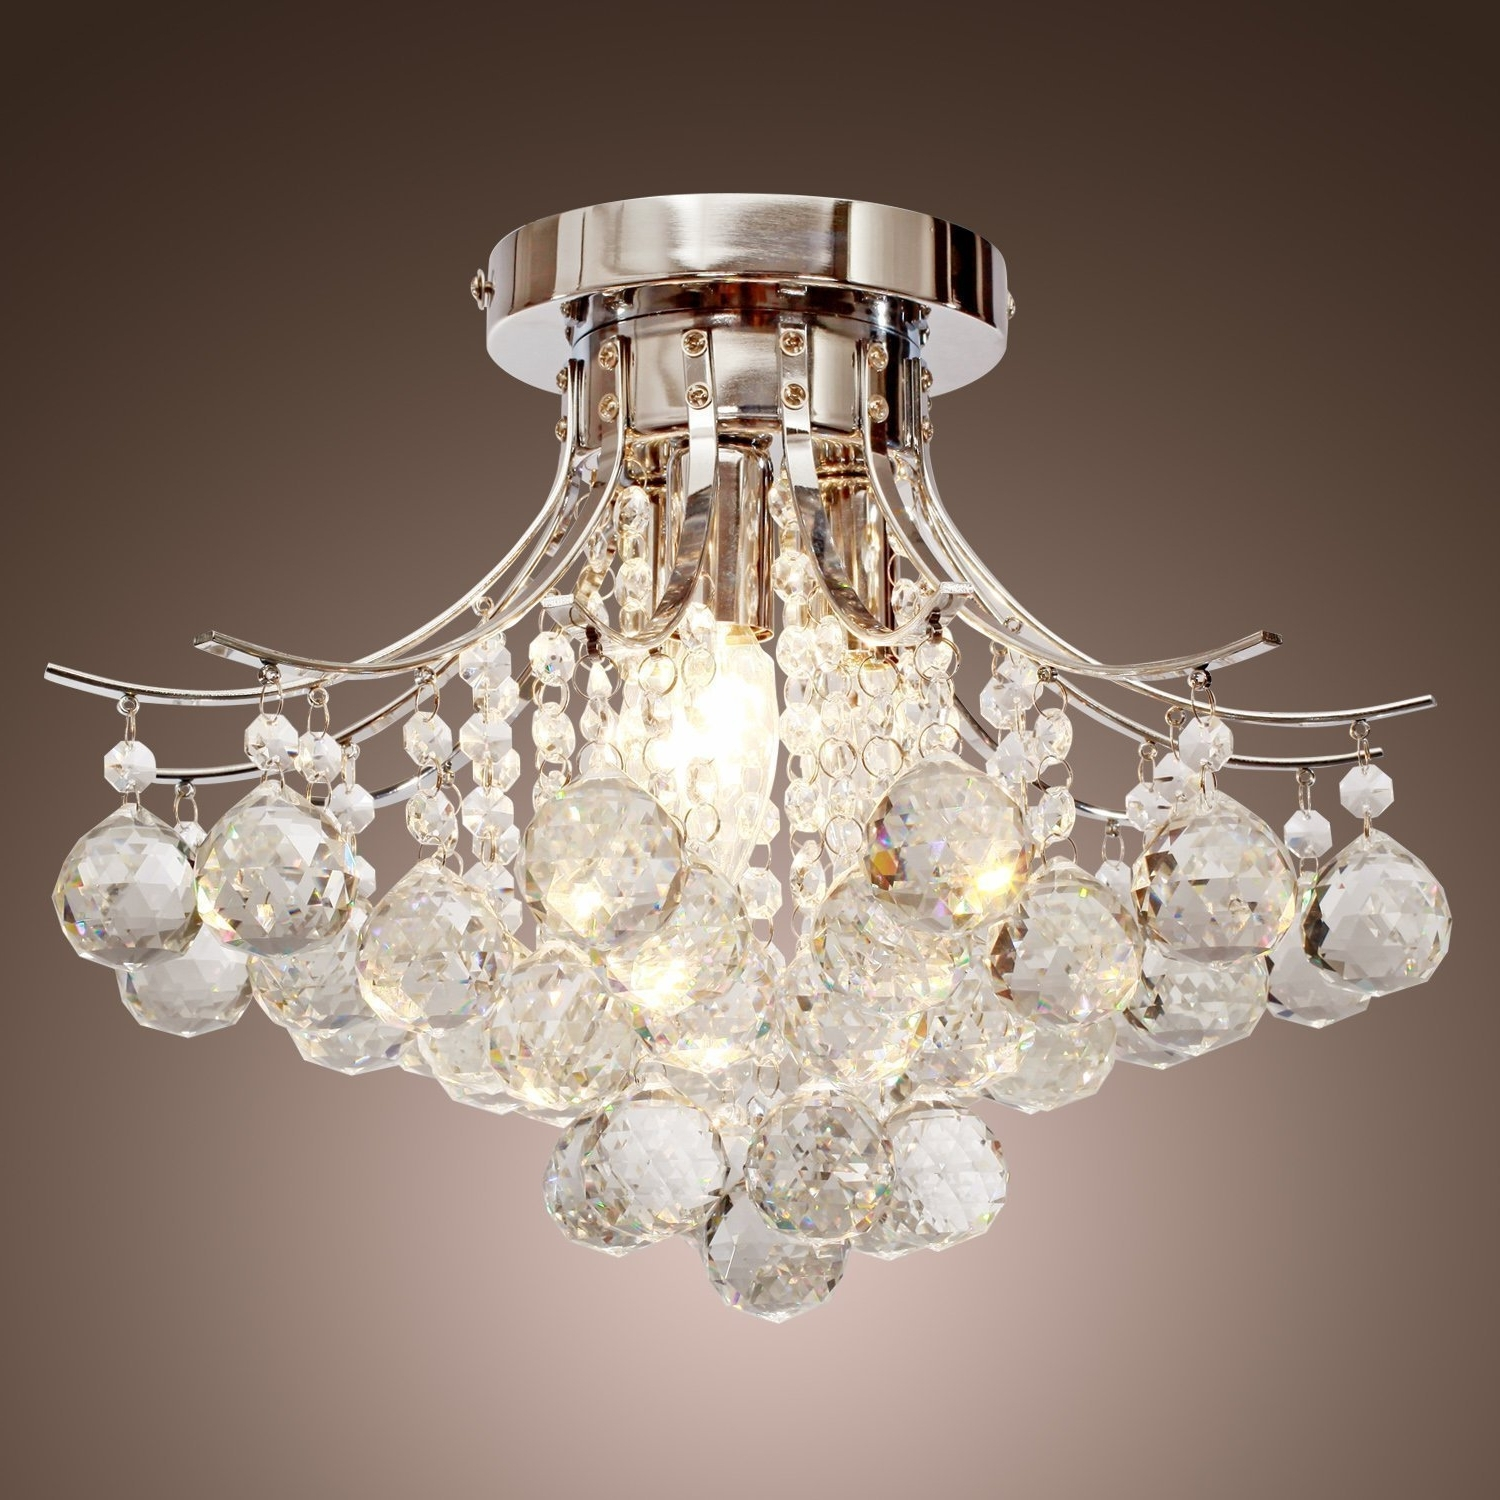 Locoâ Chrome Finish Crystal Chandelier With 3 Lights, Mini Style With Most Current Crystal Chandeliers (View 6 of 15)